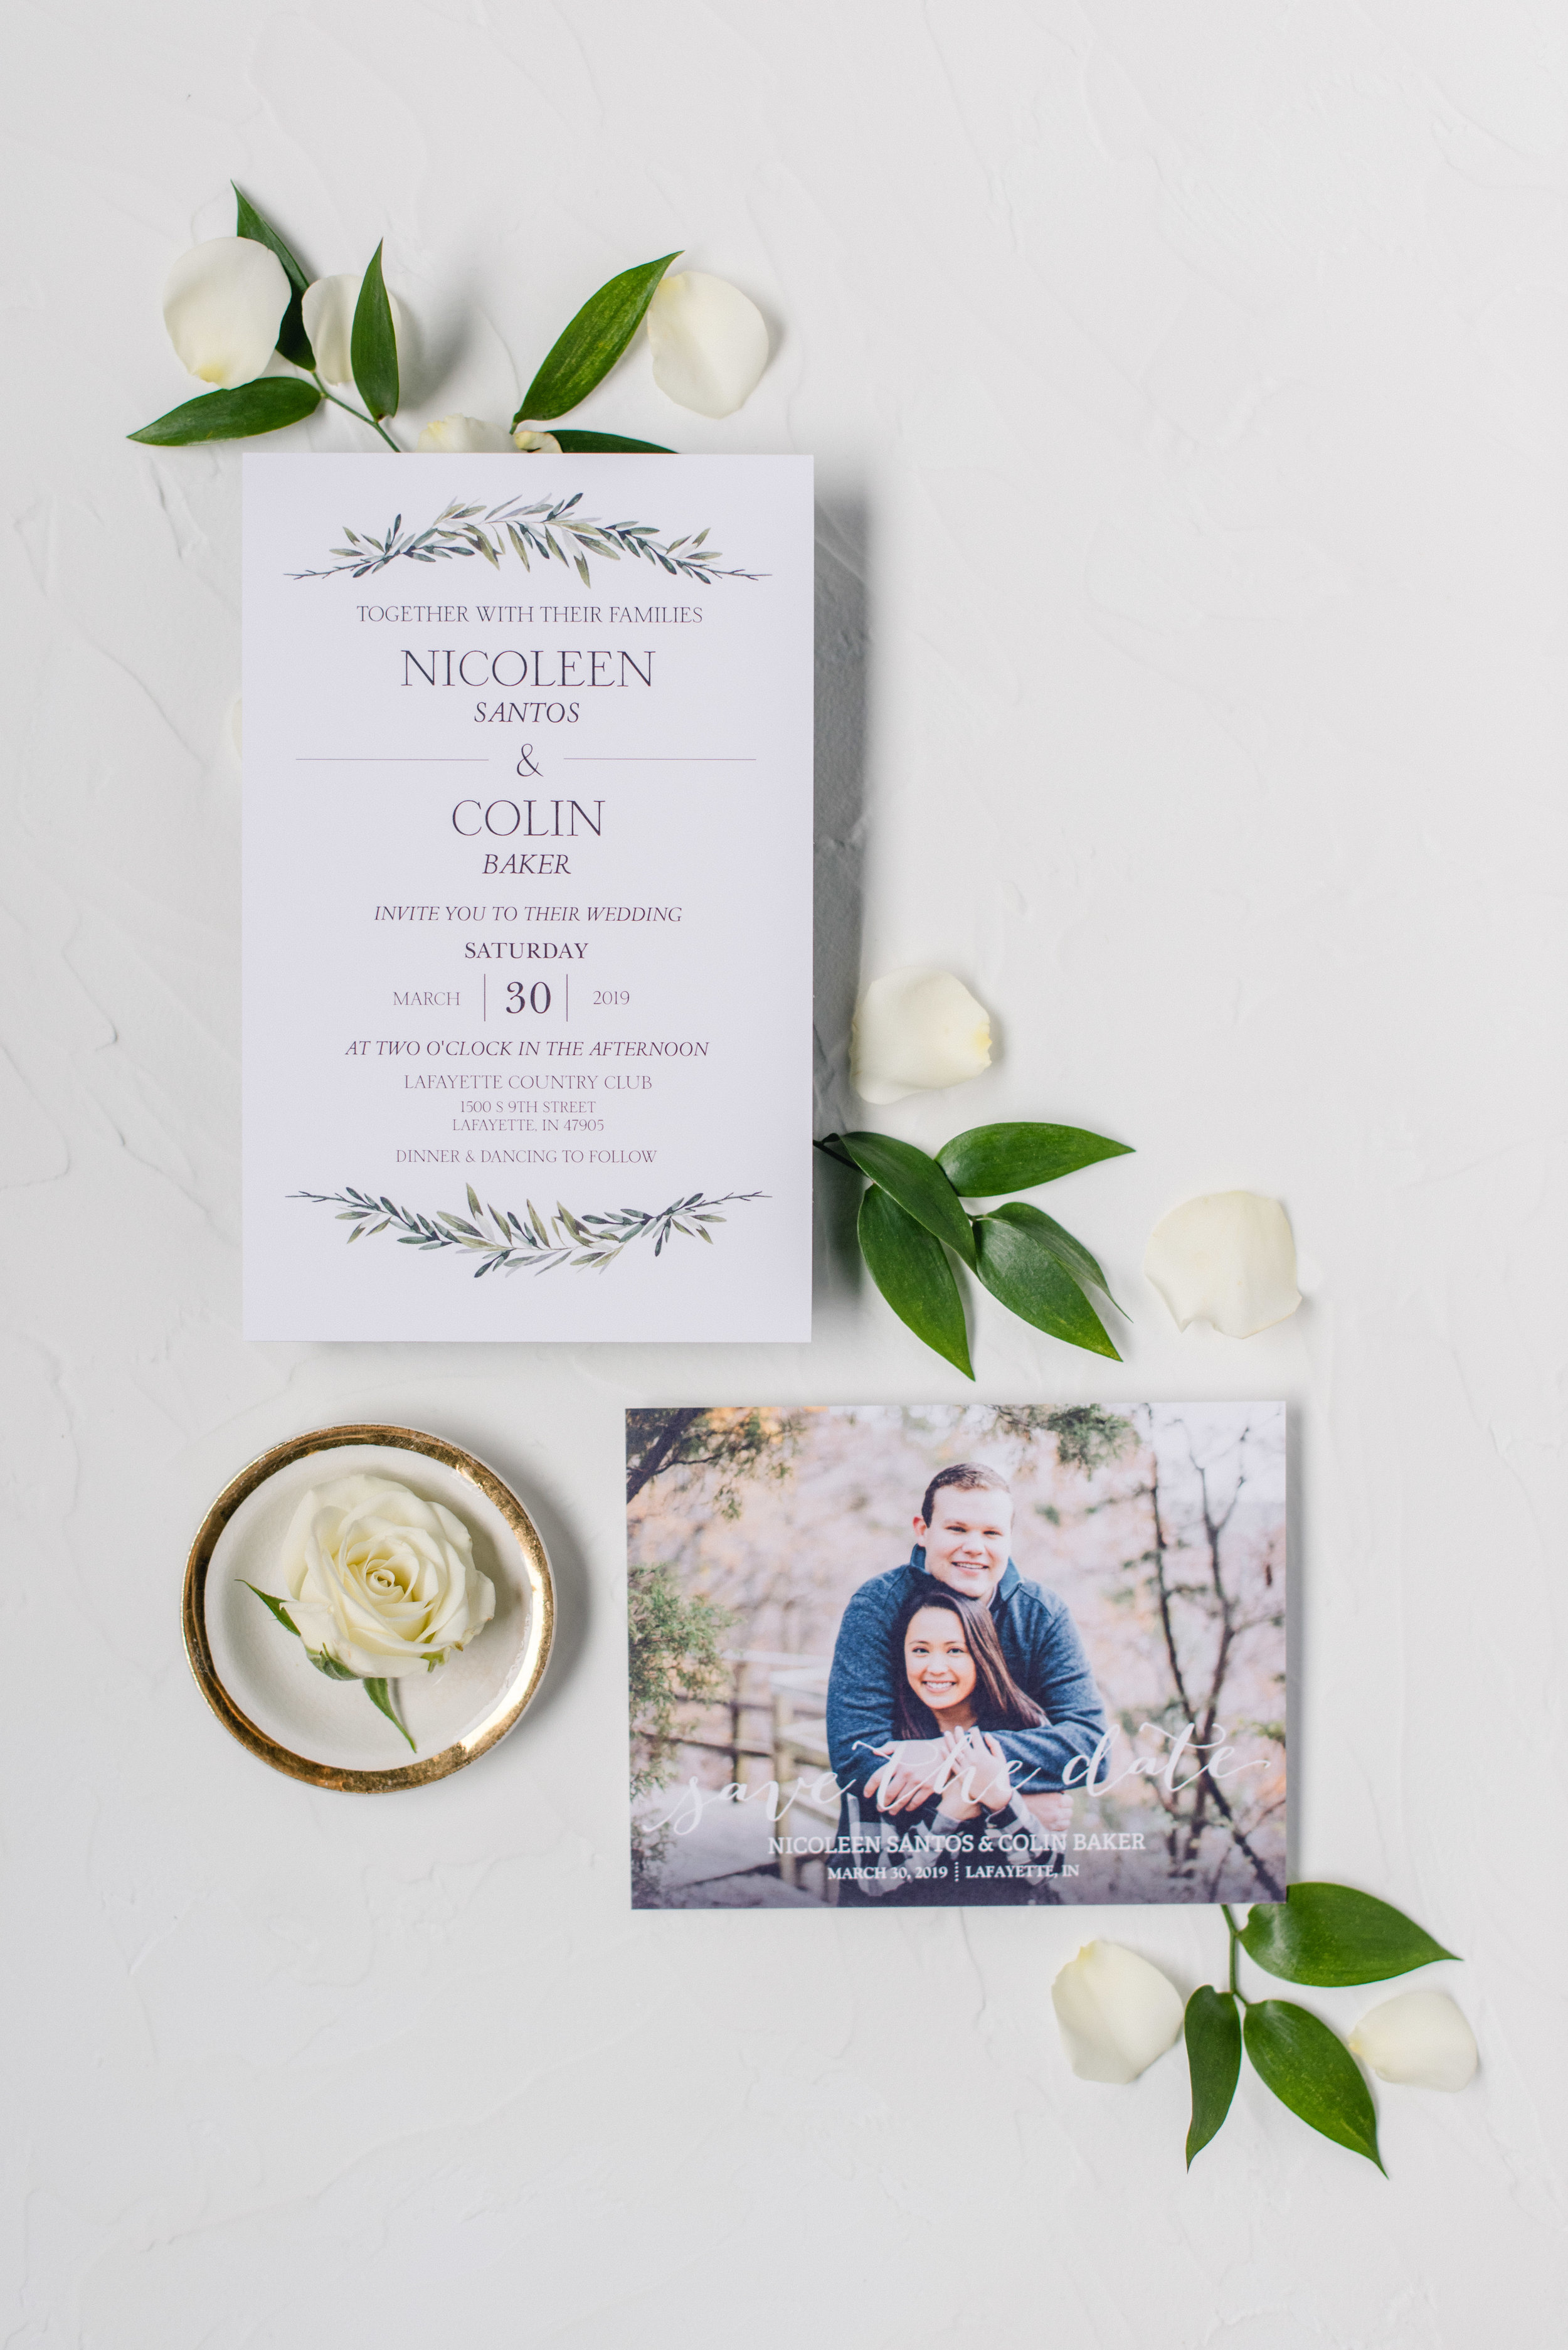 invitation styled with greens and roses.jpg